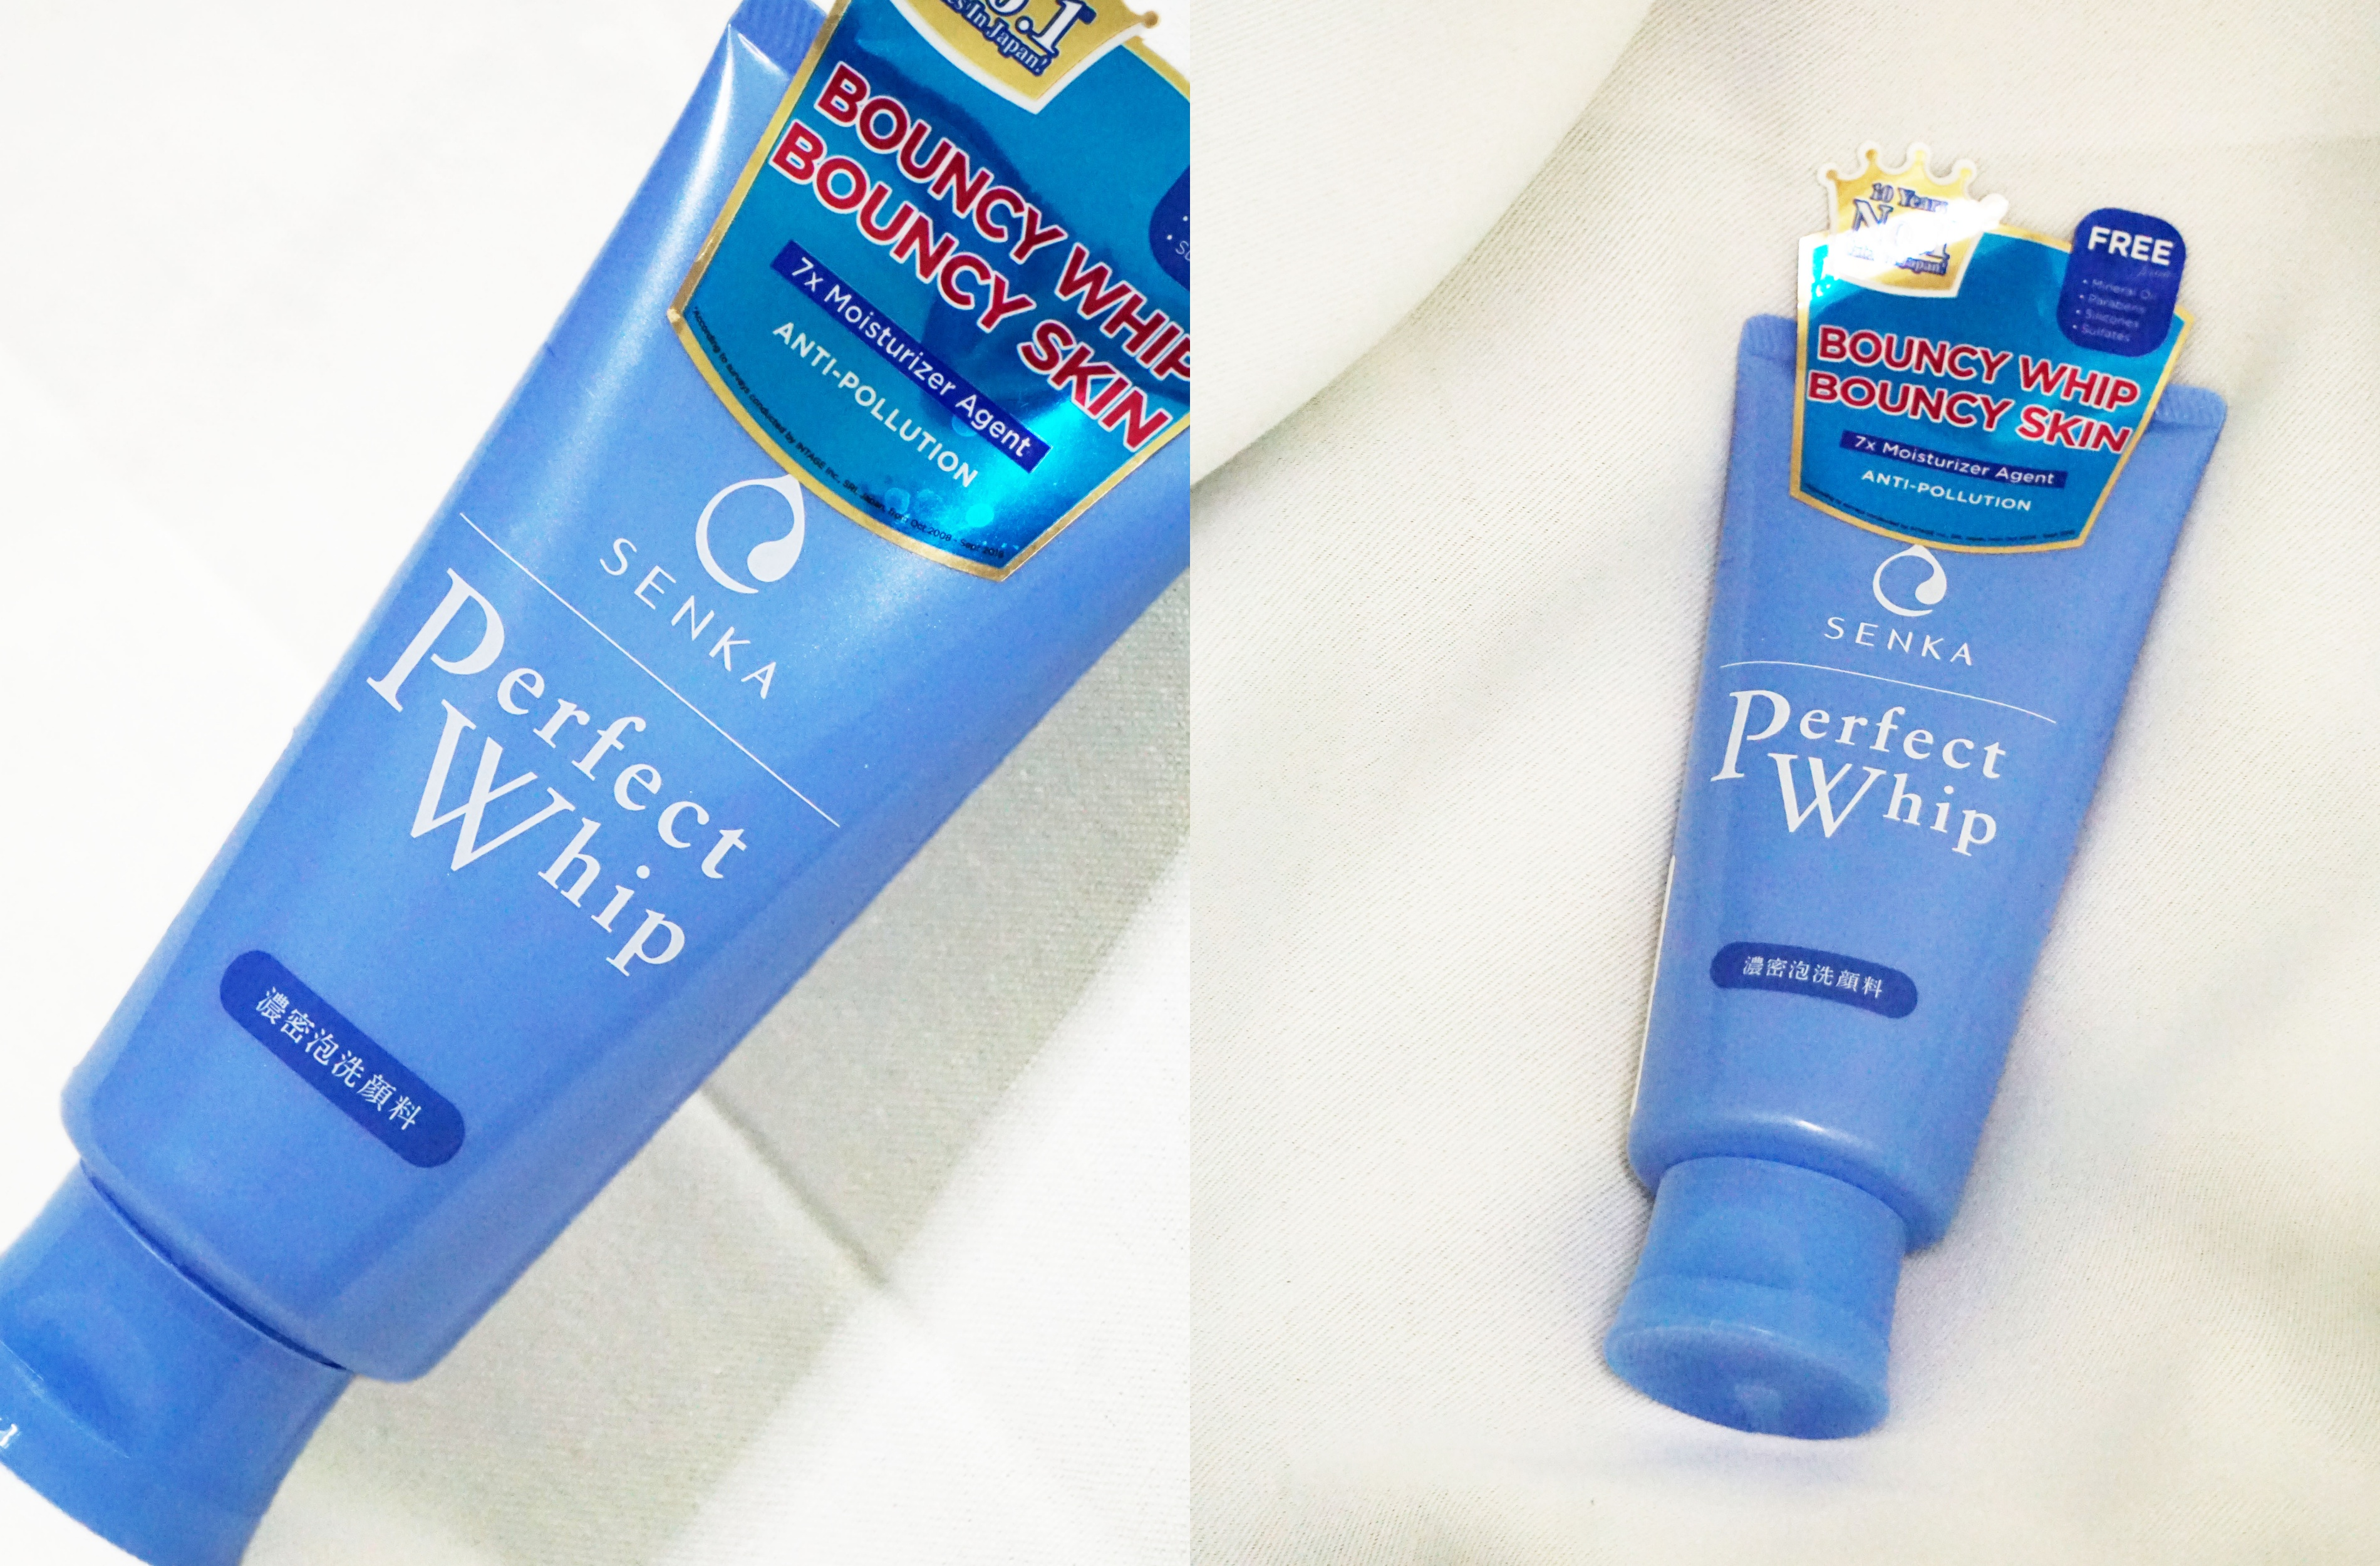 REVIEW   Senka Perfect Whip Cleanser